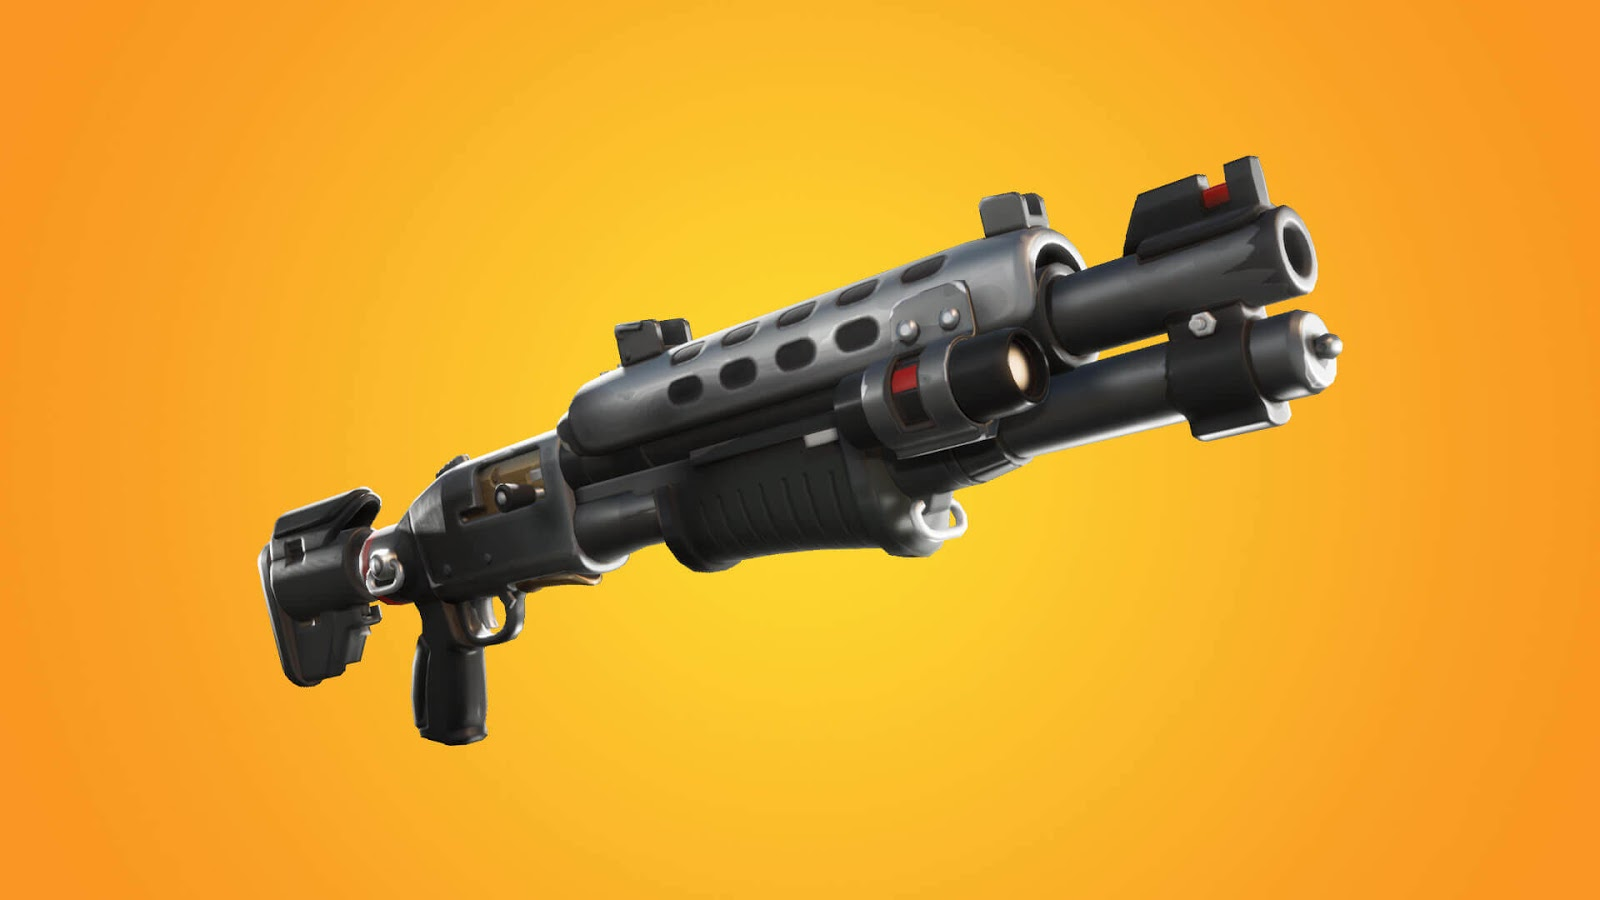 Fortnite V9.40 Patch Notes, New Tactical Shotguns, Bolt-Action Sniper Rifle, And More